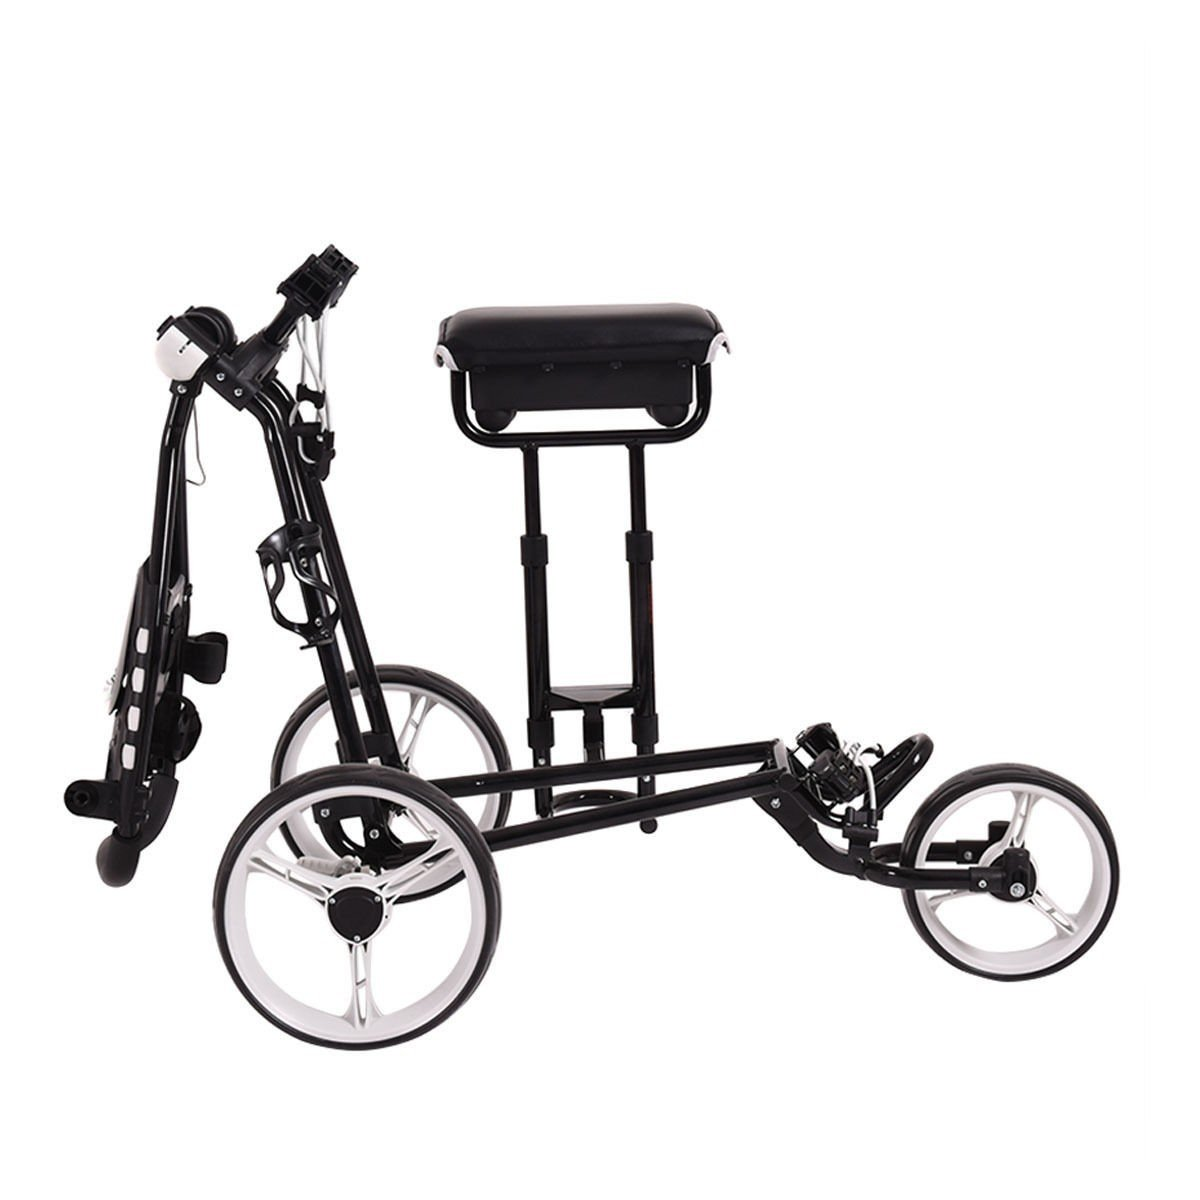 Foldable 3 Wheels Push Pull Golf Club Cart Trolley w/ Stool by Apontus